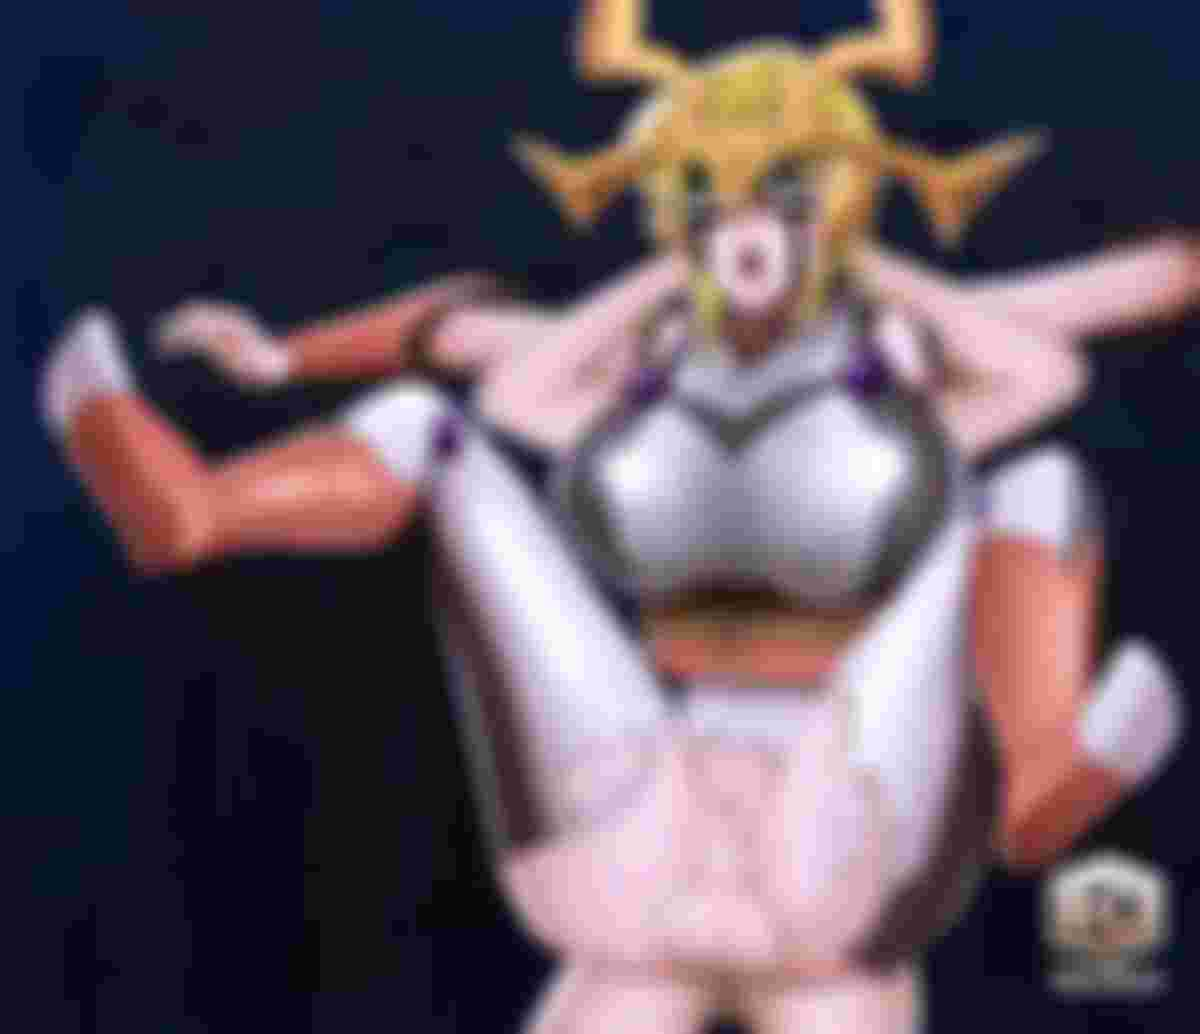 Yugioh alexis fully nude what